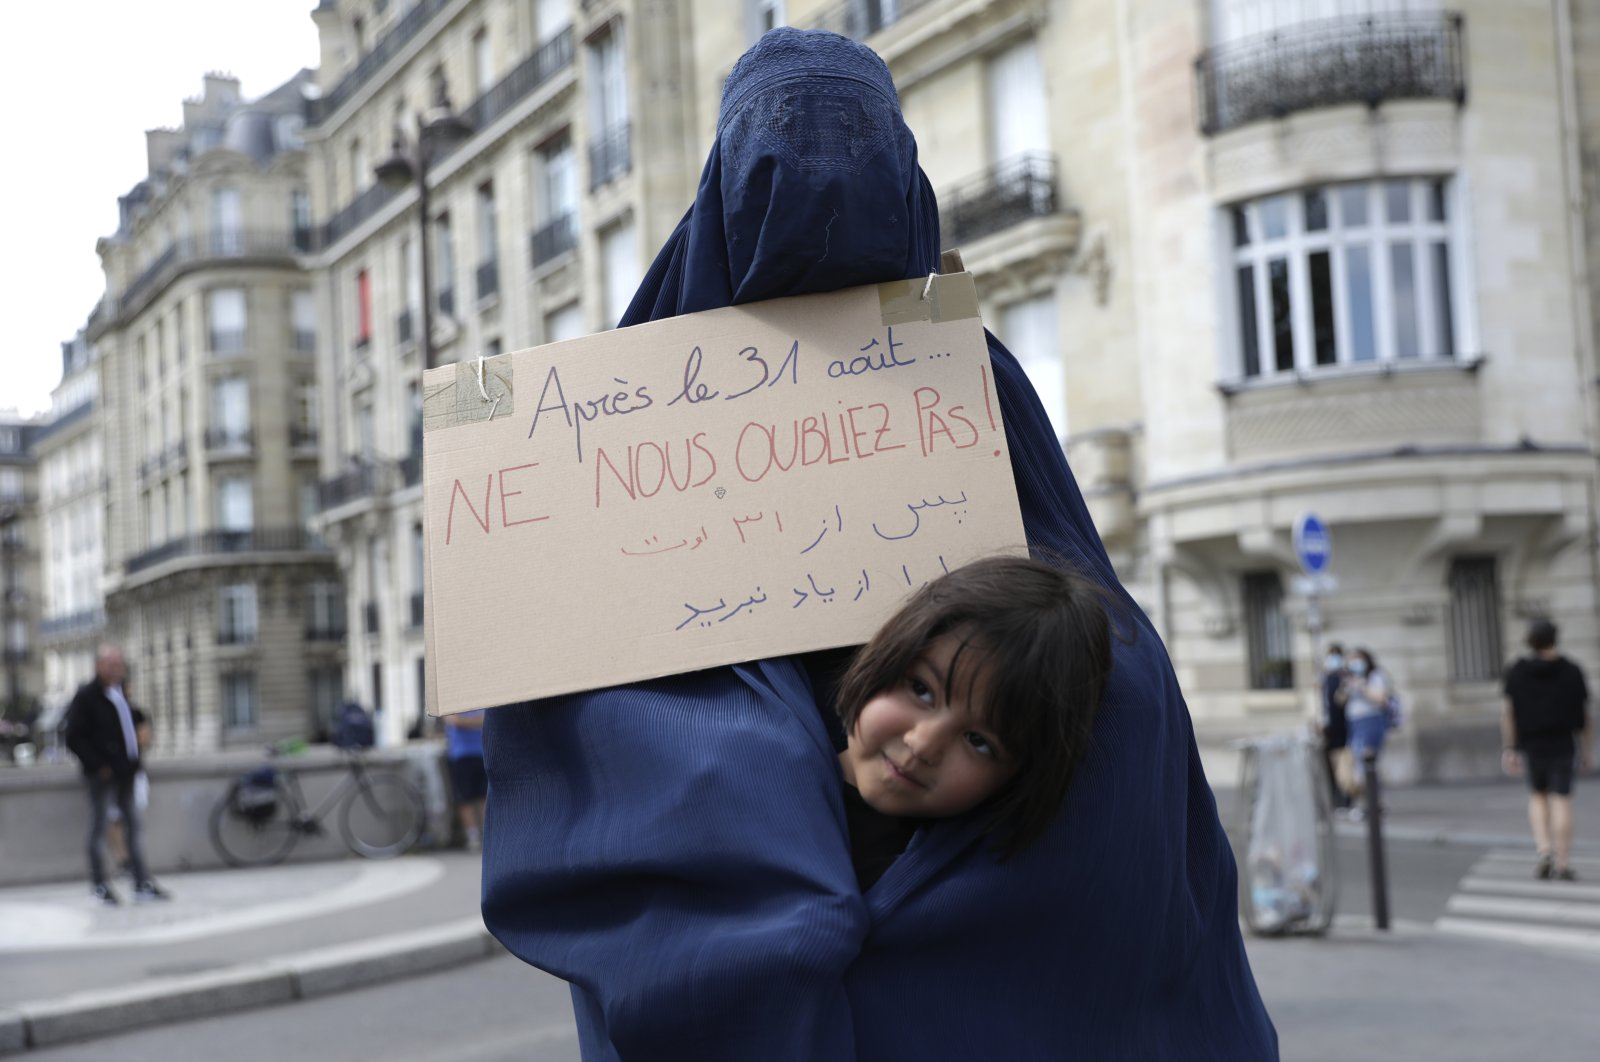 """A woman wearing a burqa and holding a placard reading """"Do not forget us after Aug. 31"""" attends a gathering in a show of solidarity with women from Afghanistan, Paris, France, Aug. 28, 2021. (AP Photo)"""